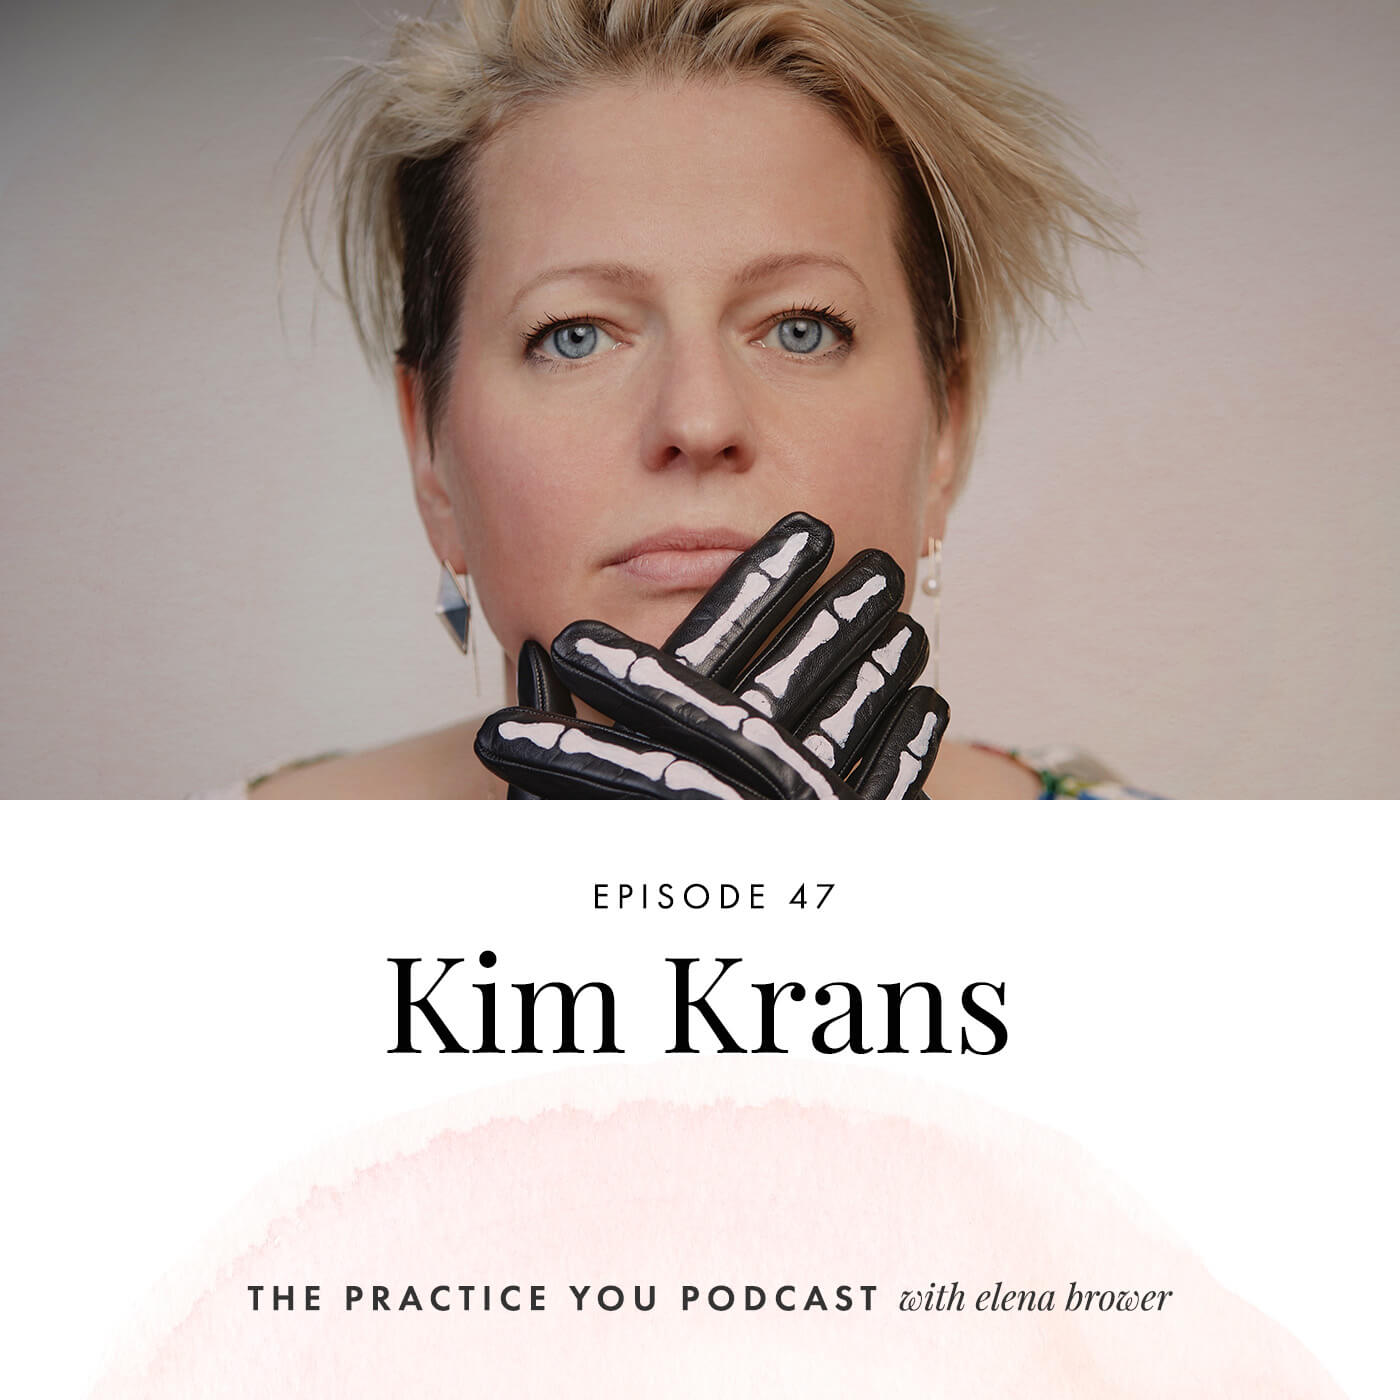 The Practice You Podcast